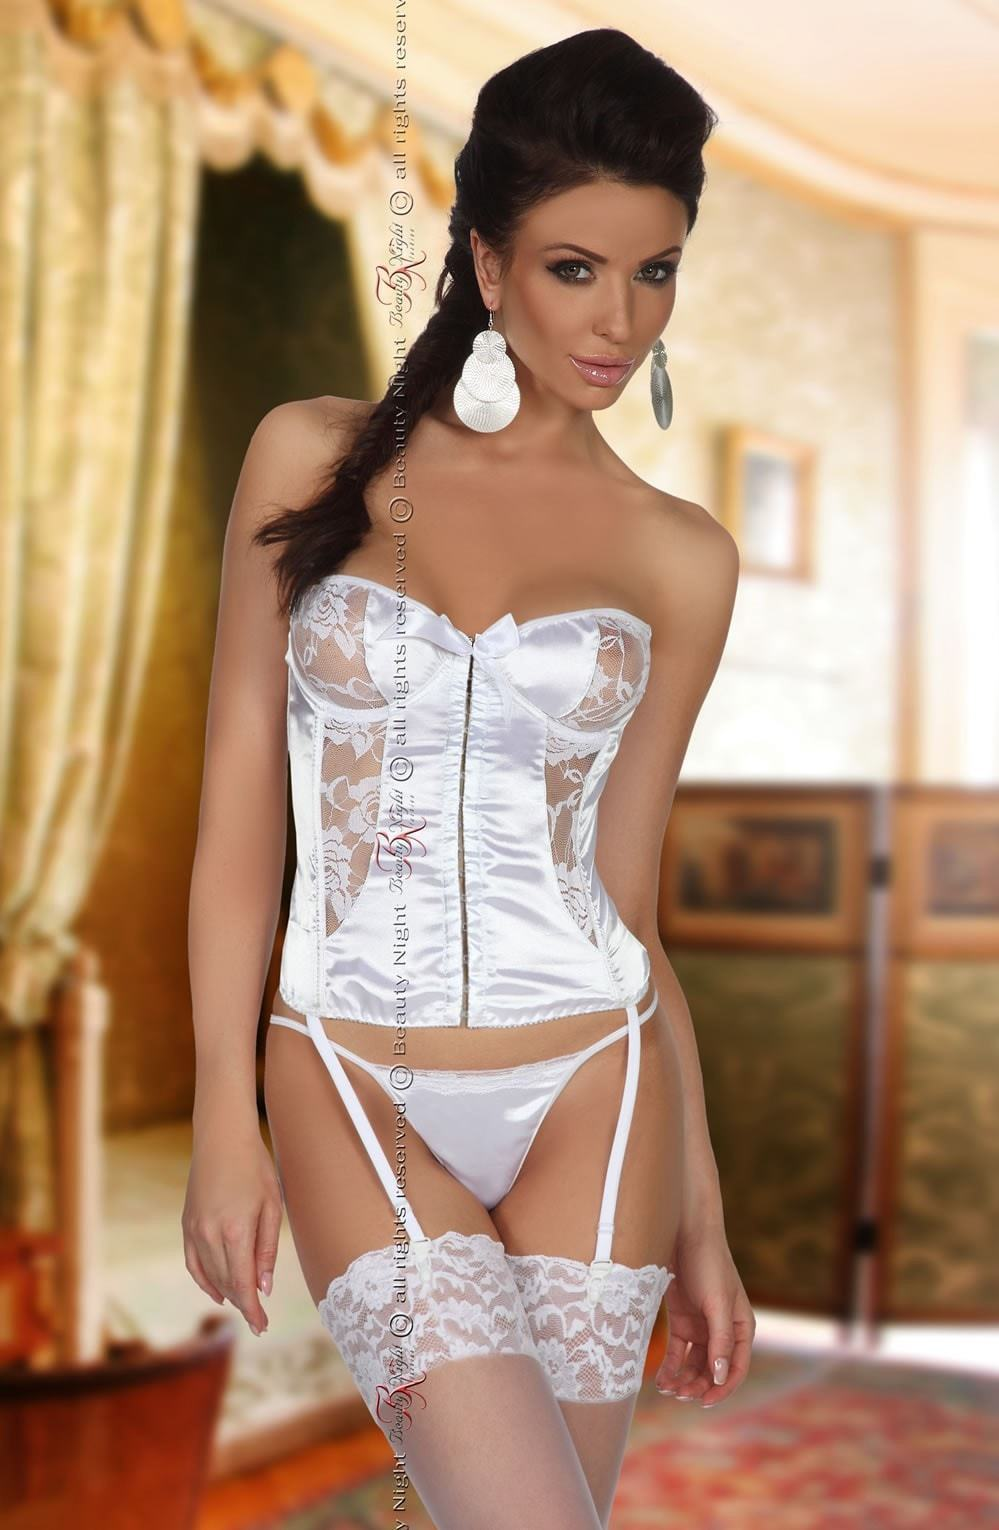 beauty night corset UK 8-12 / White Beauty Night Patricia White Corset